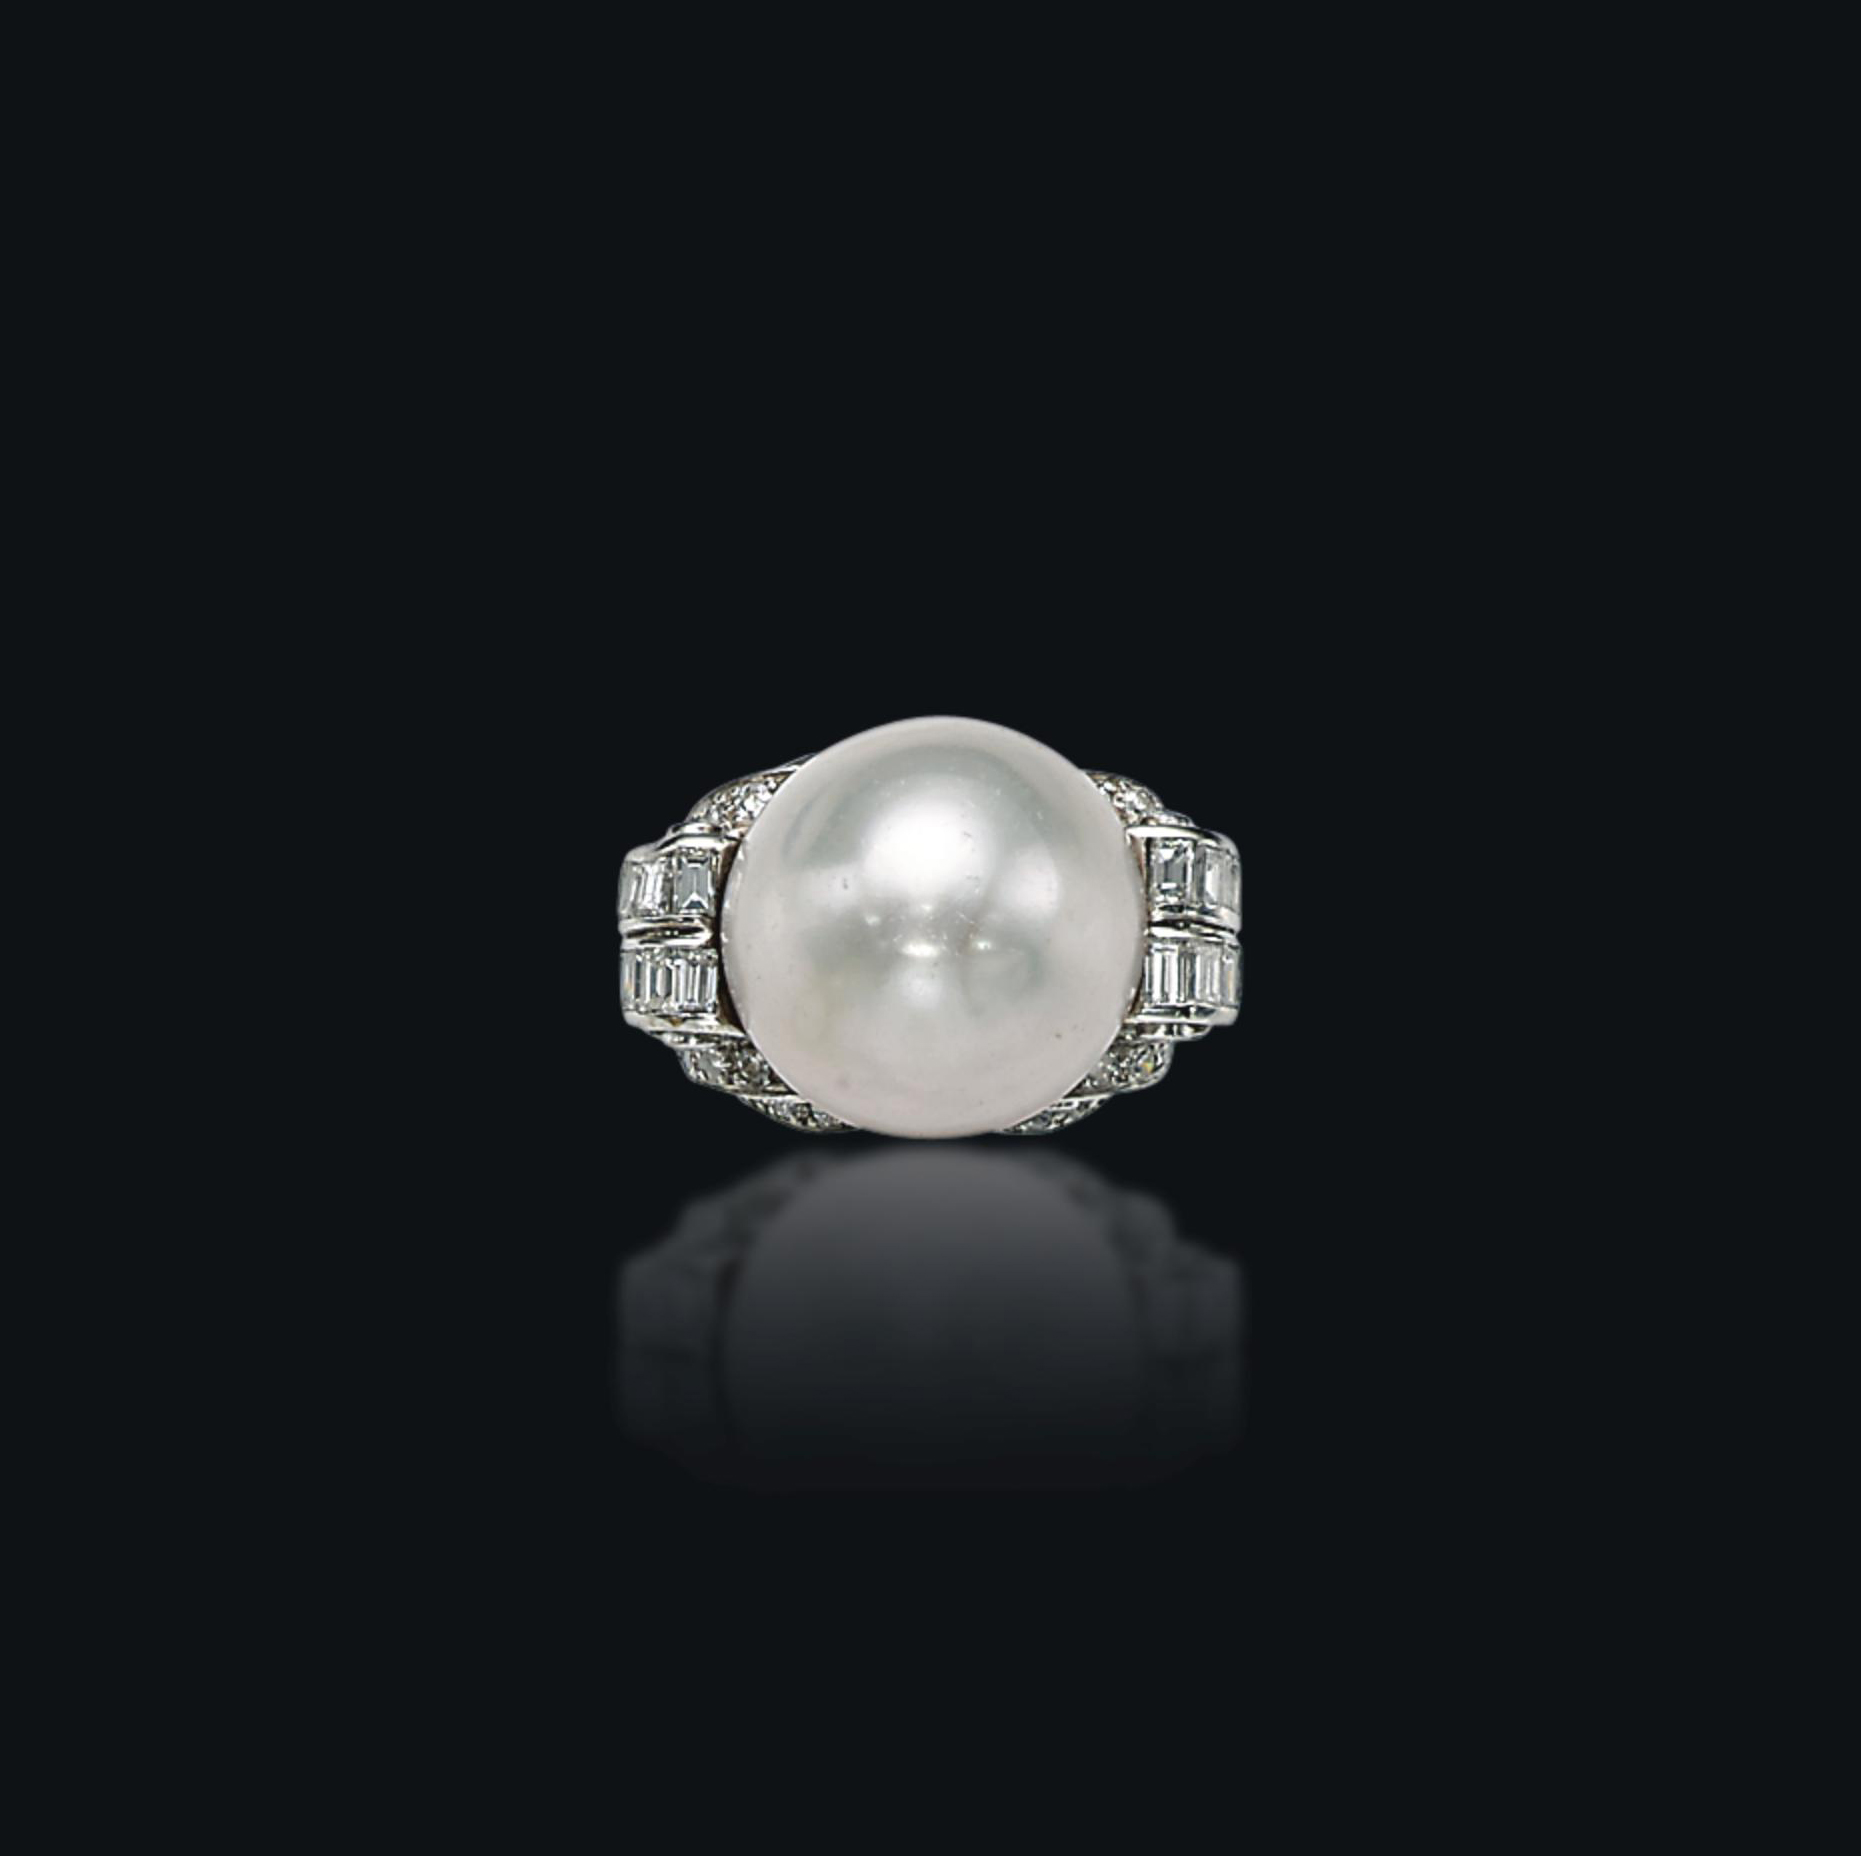 AN ART DEC0 NATURAL PEARL AND